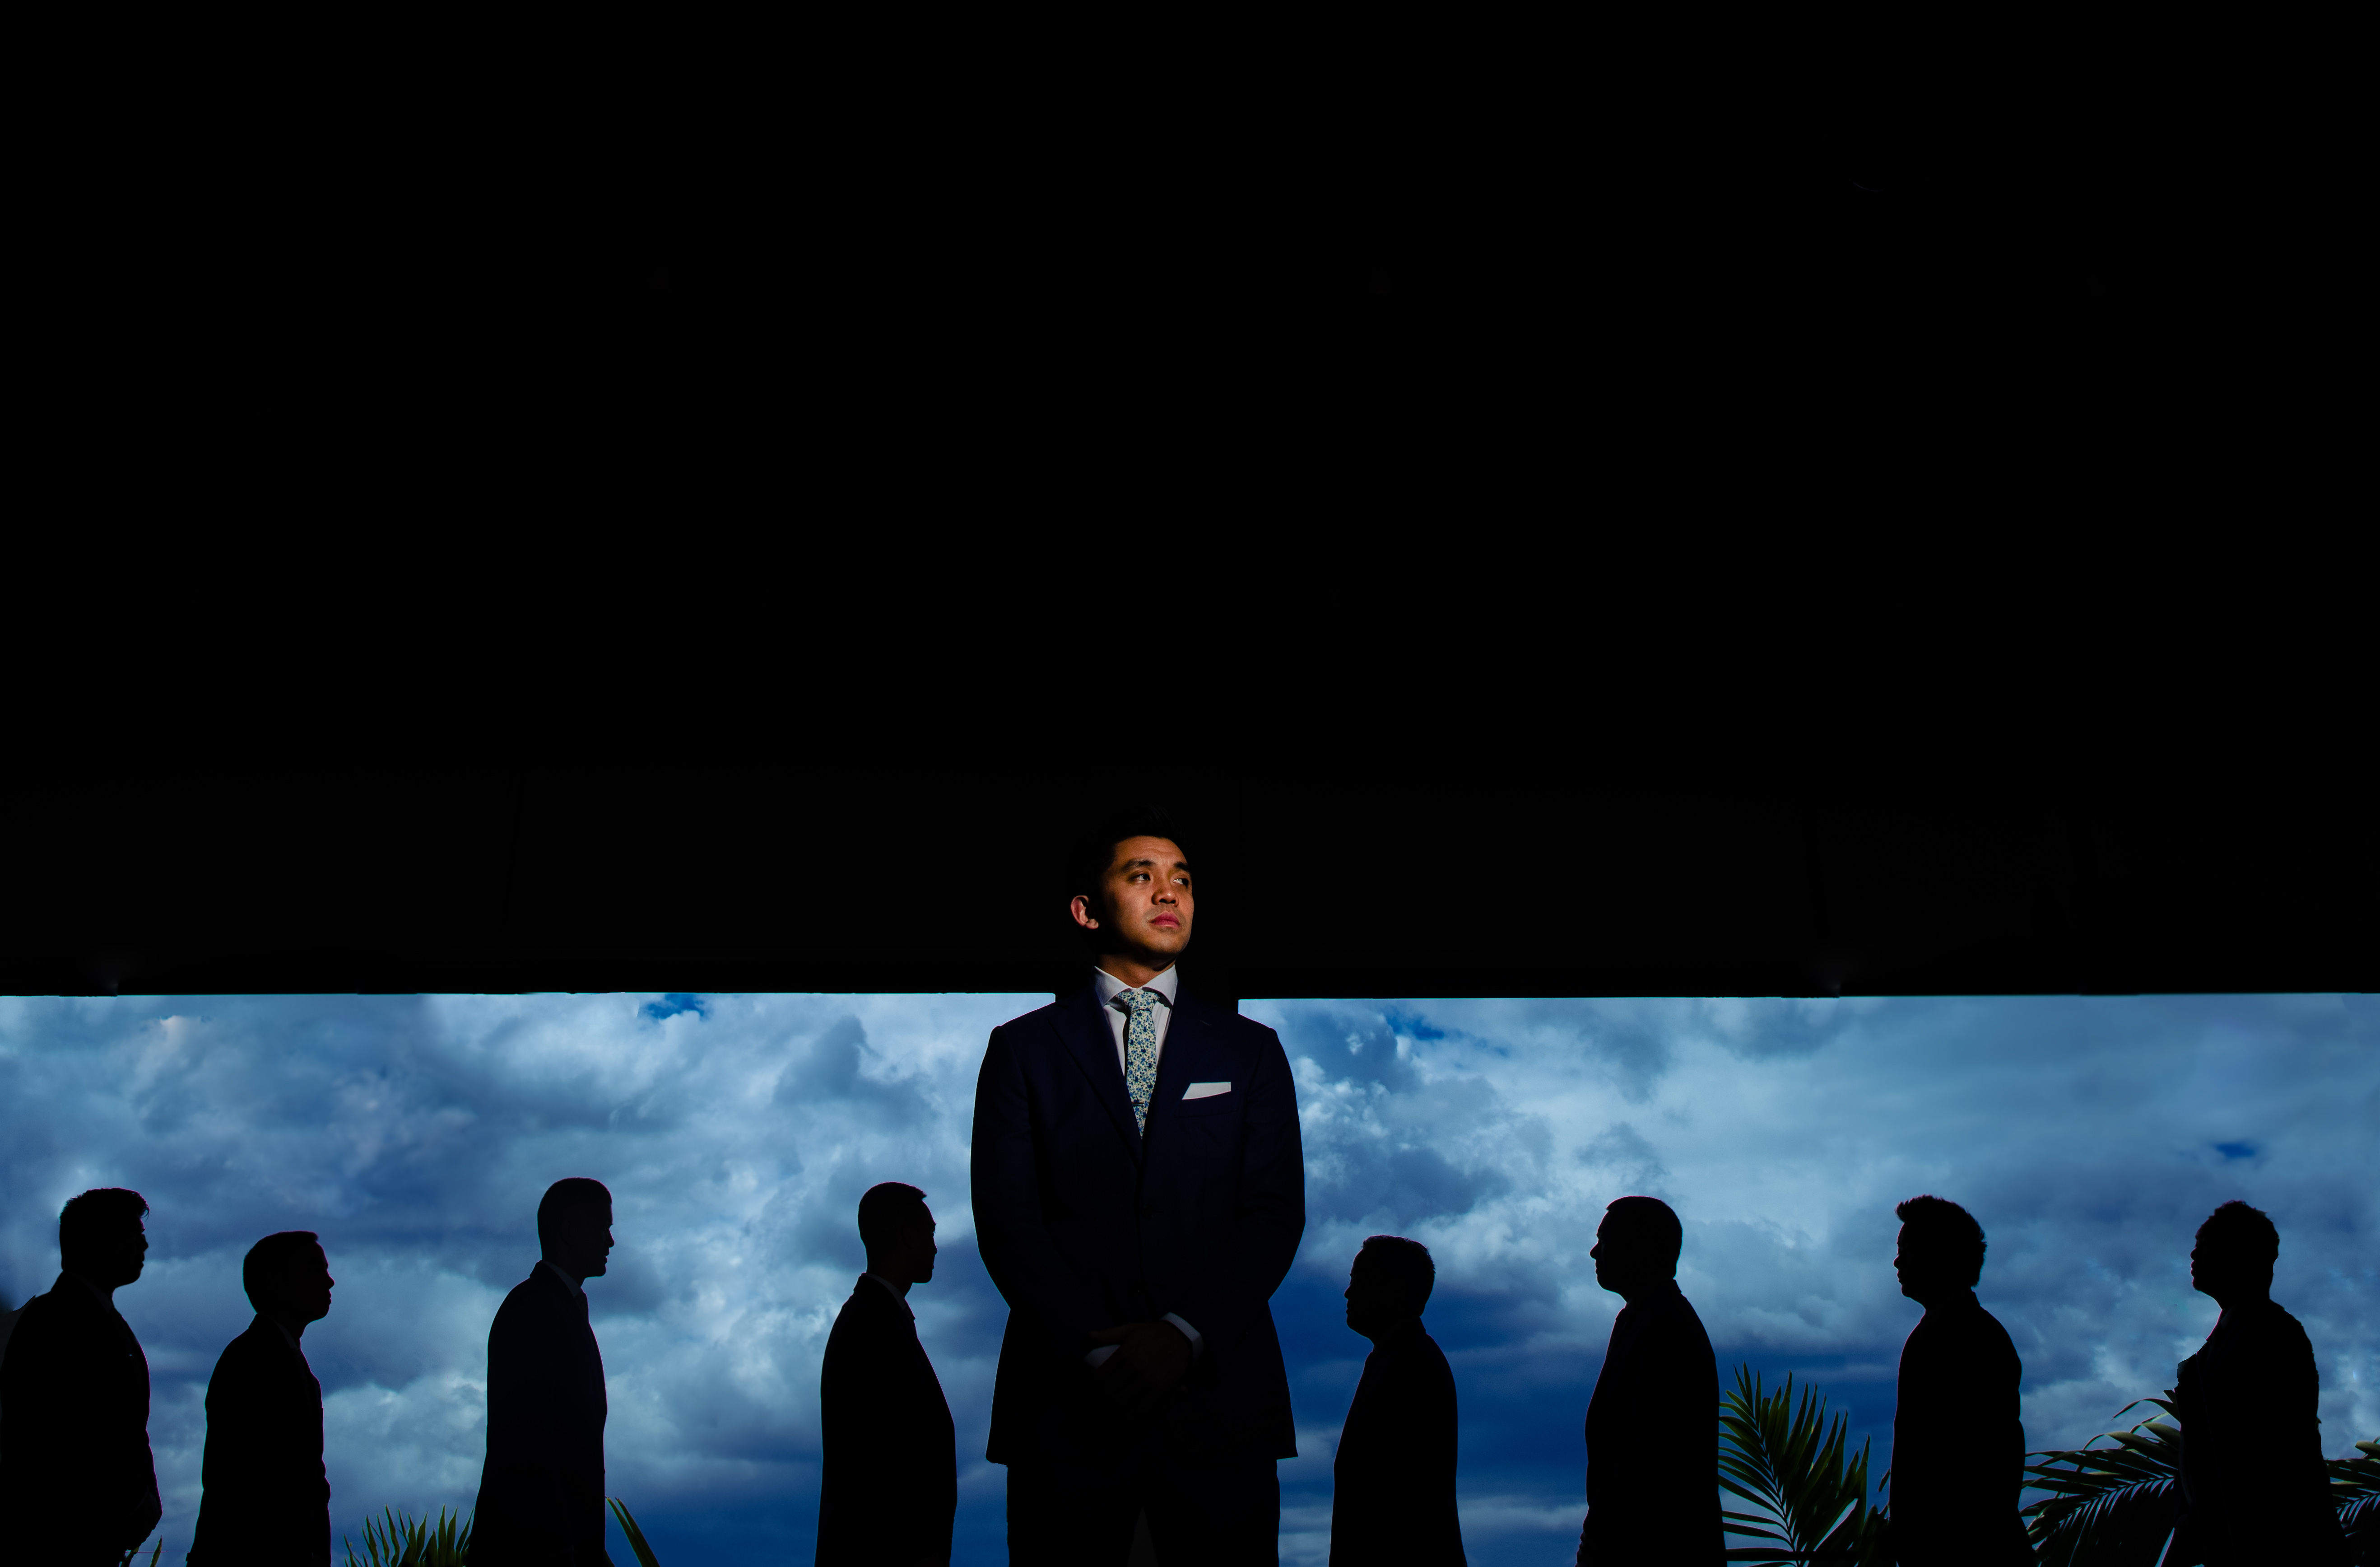 groom-against-silhouette-groomsmen-and-sky-by-angela-nelson-photography